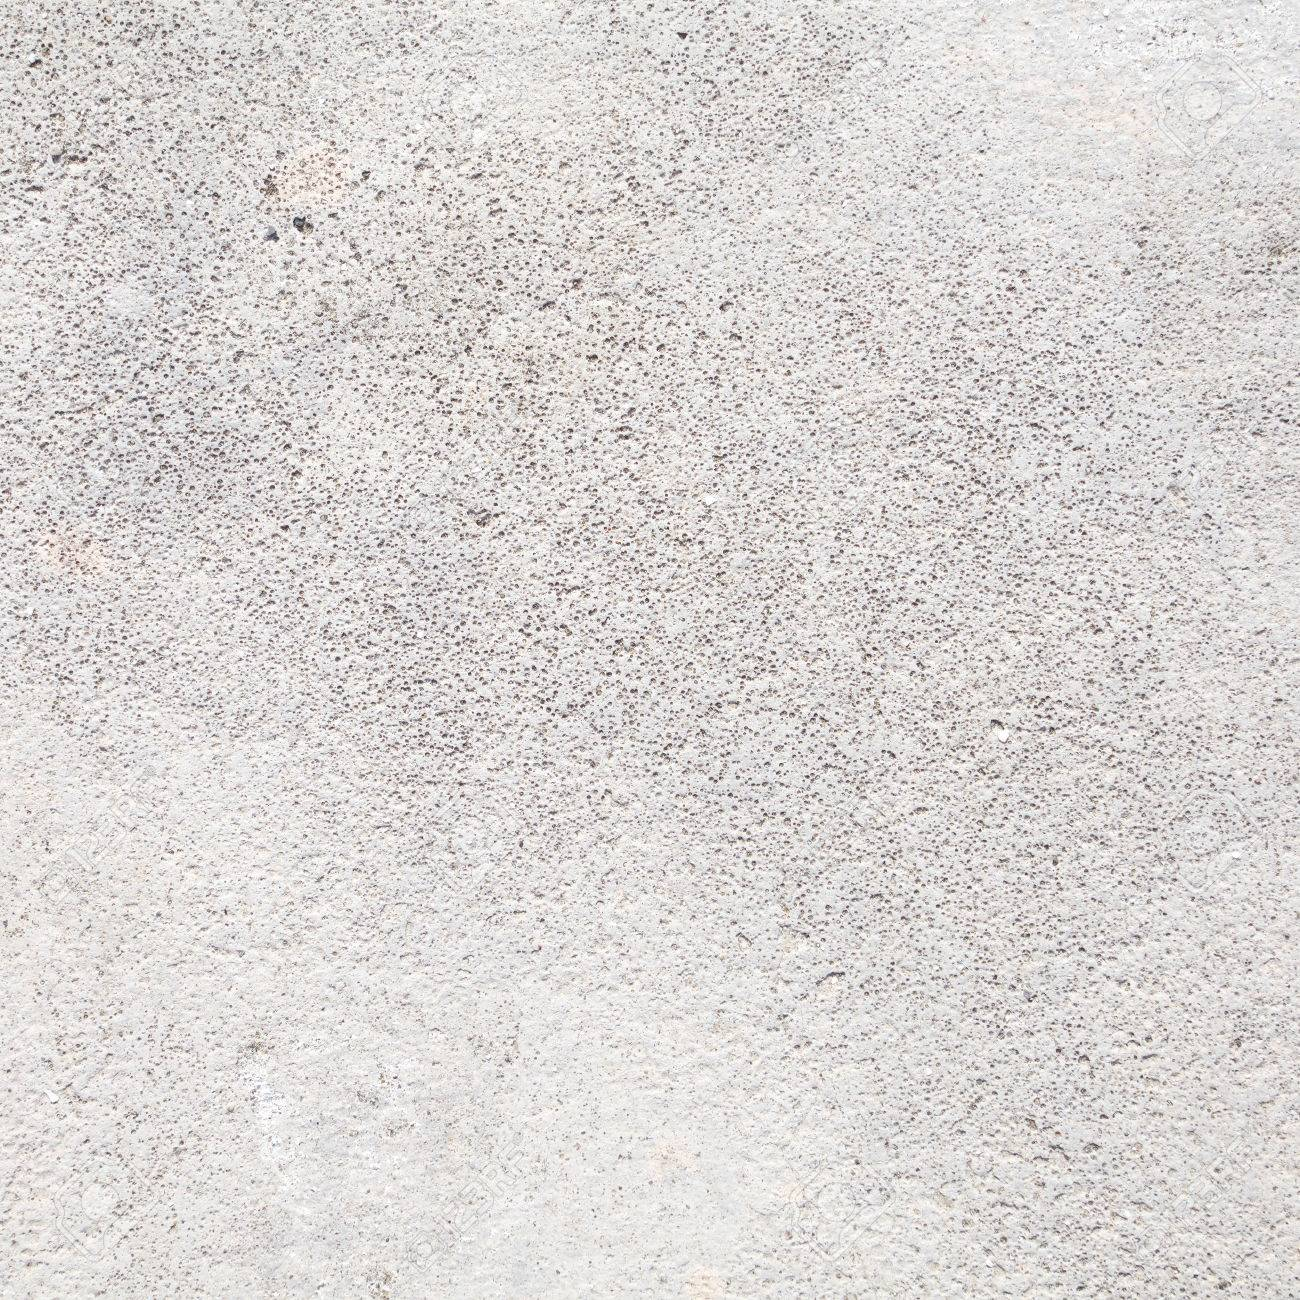 Concrete floor texture Stock Photo   23170008. Concrete Floor Texture Stock Photo  Picture And Royalty Free Image